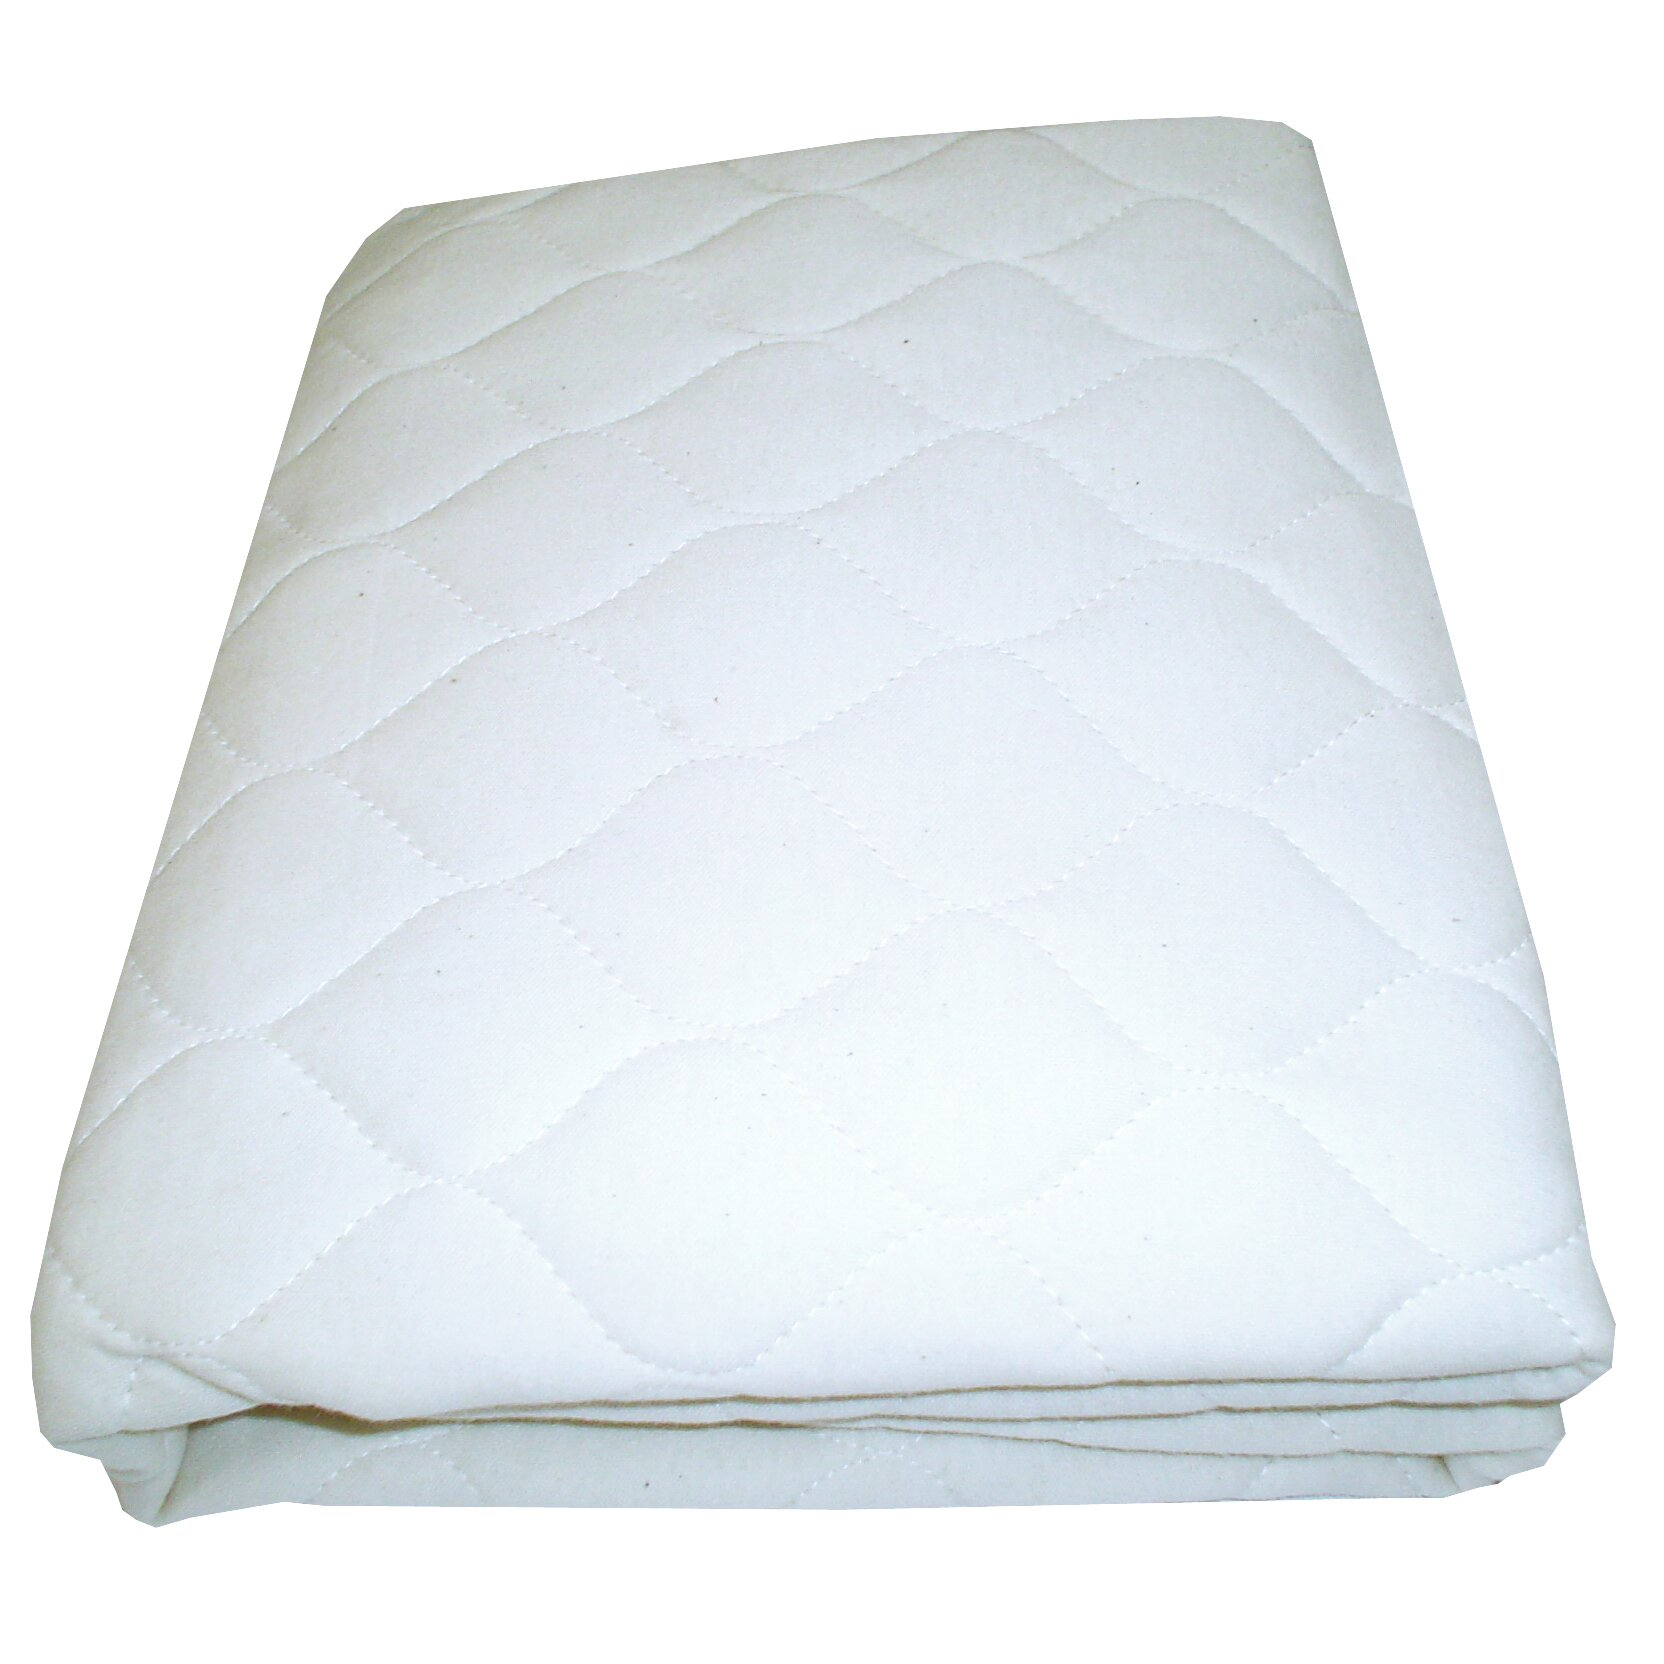 American Baby pany Waterproof Quilted Bassinet Mattress